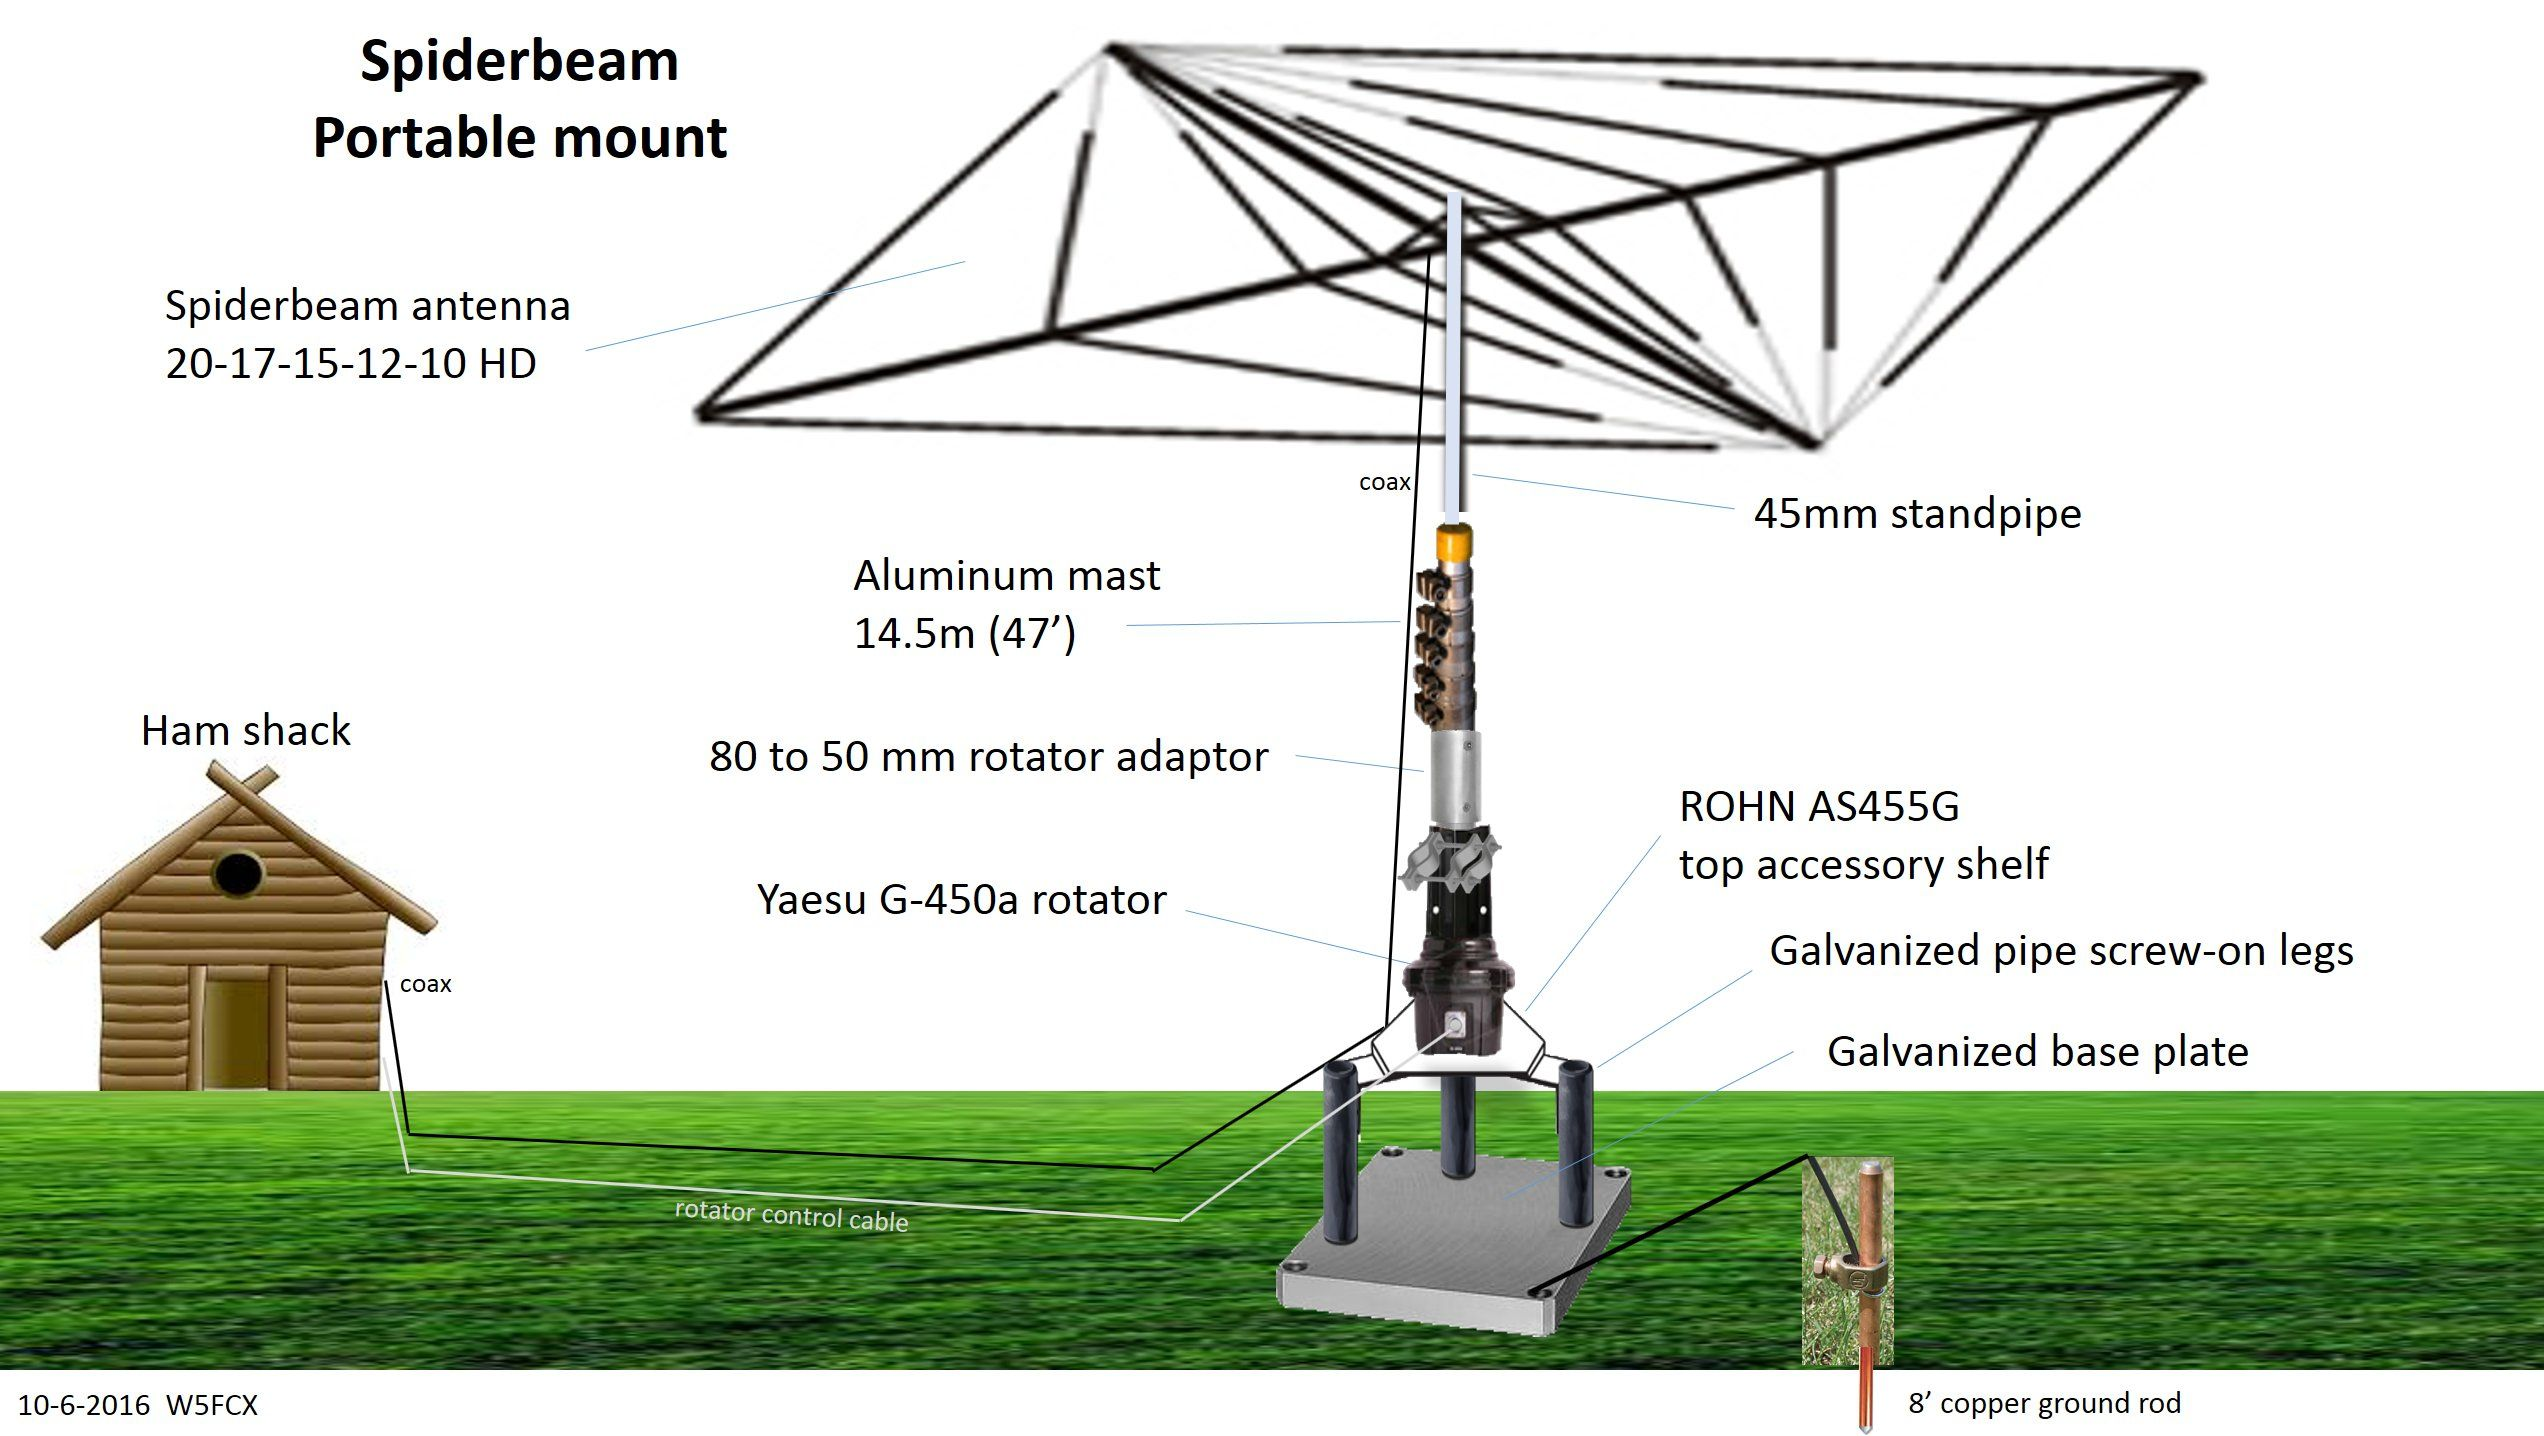 design of a portable 50 spiderbeam yagi antenna made of wire on a 47 [ 2544 x 1436 Pixel ]